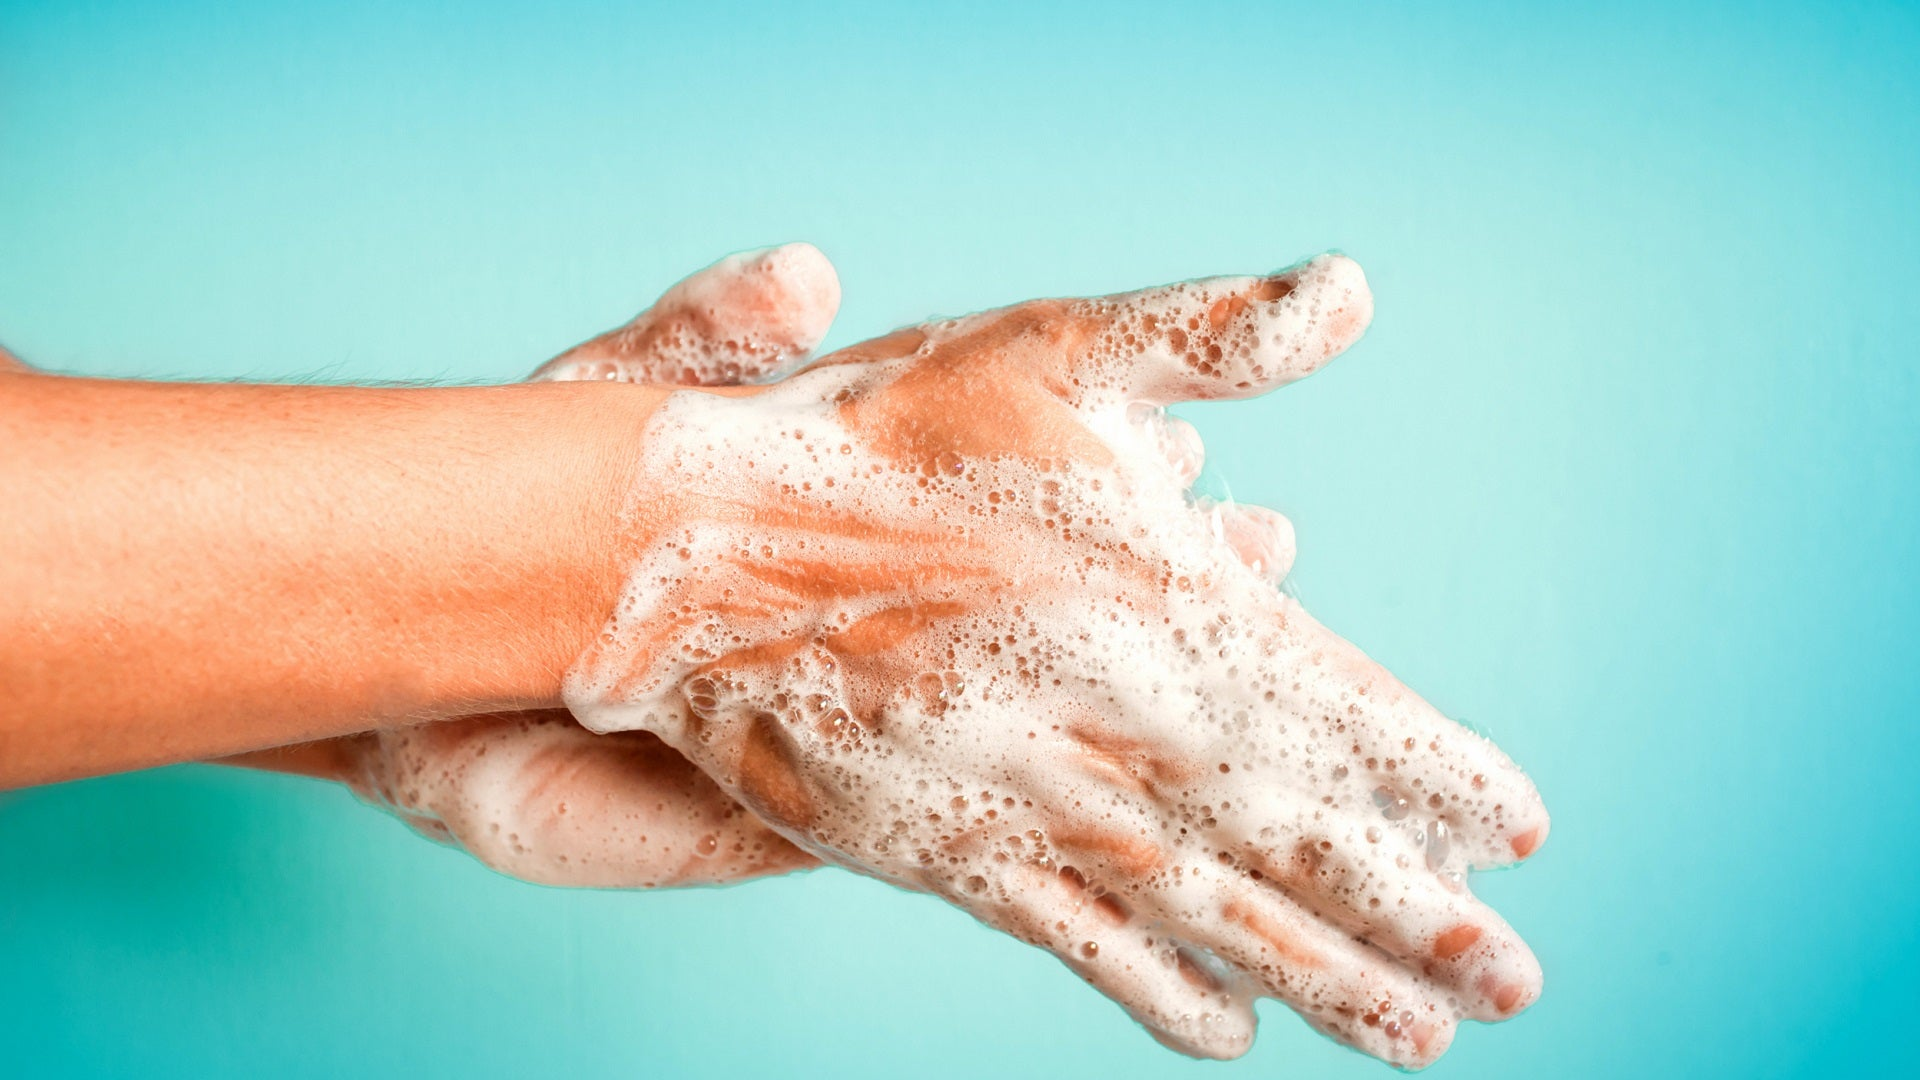 【Pandemic Essentials】 Delicate Foam to Protect Your Hands and Health